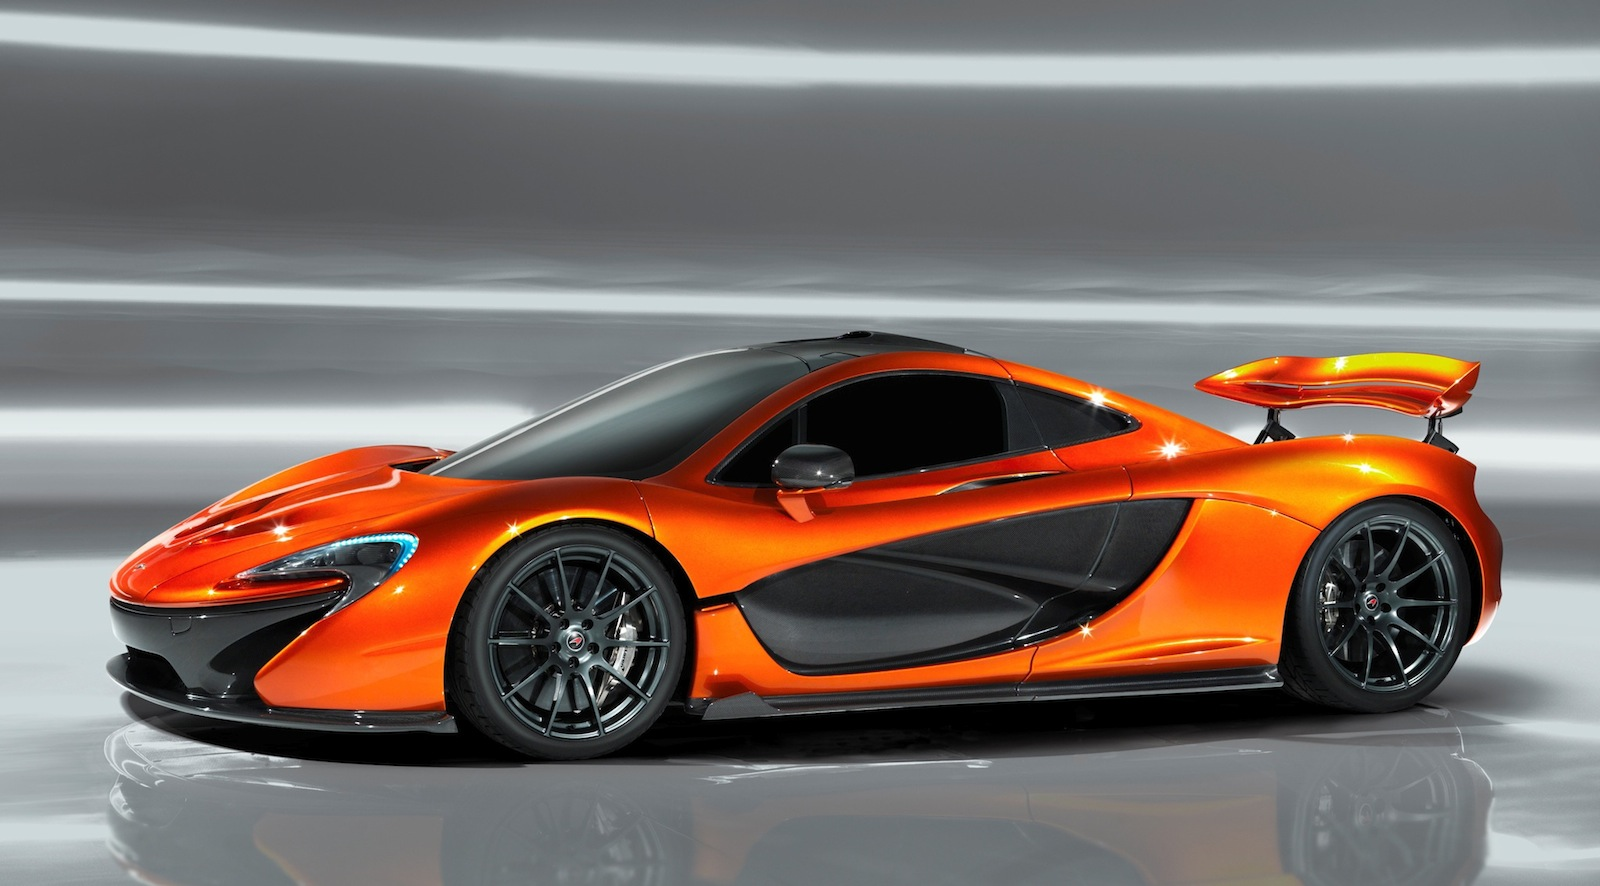 Mclaren Newport Beach New Official Images Mclaren P1